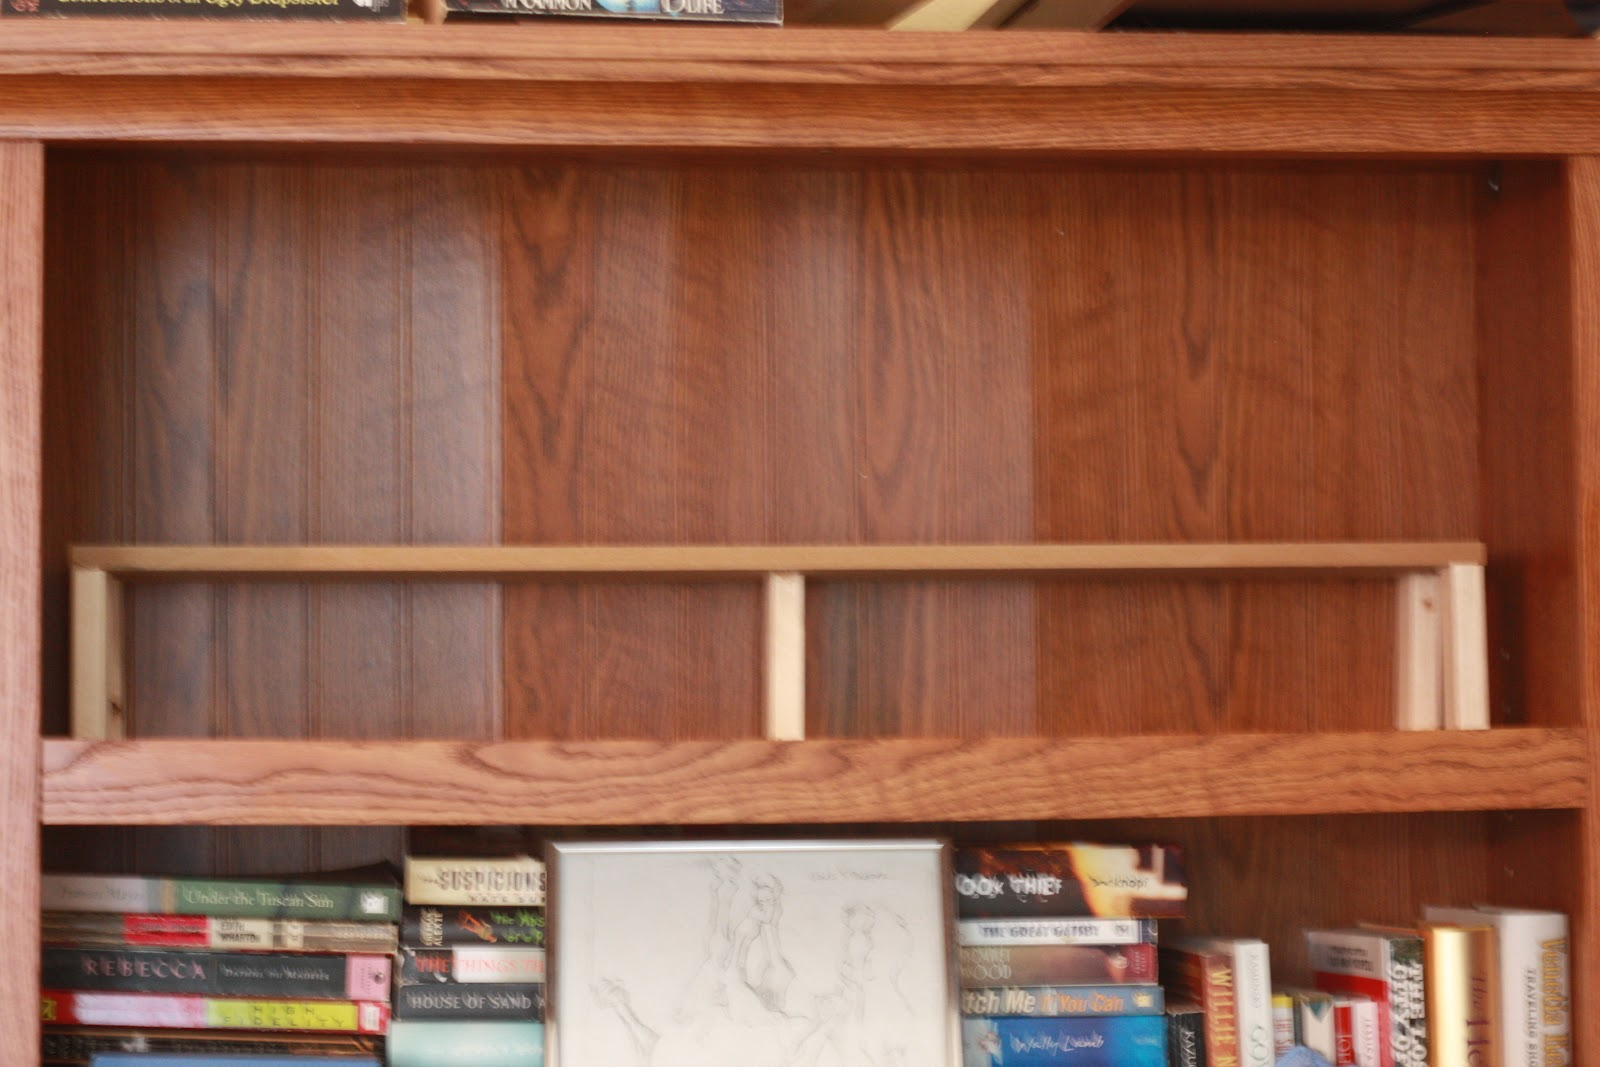 So Now I Have A Raised Row In The Back And Lower Front Seriously How Simple Genius Is This Its Terrible To Stack Books Like Had Been